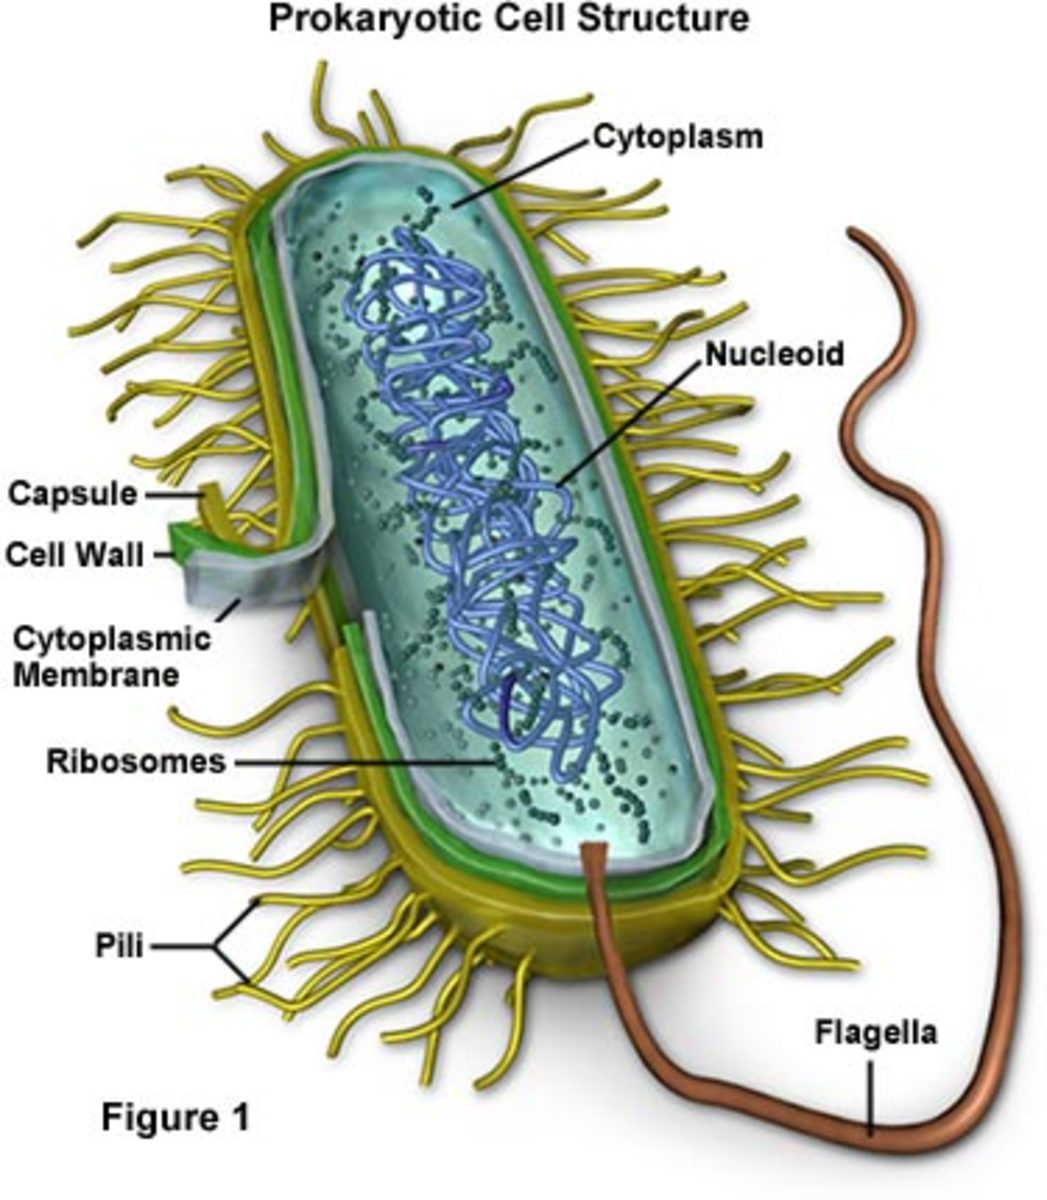 Bacterial Intracellular Structures That Give Bacteria/Prokaryotes an Advanatage!